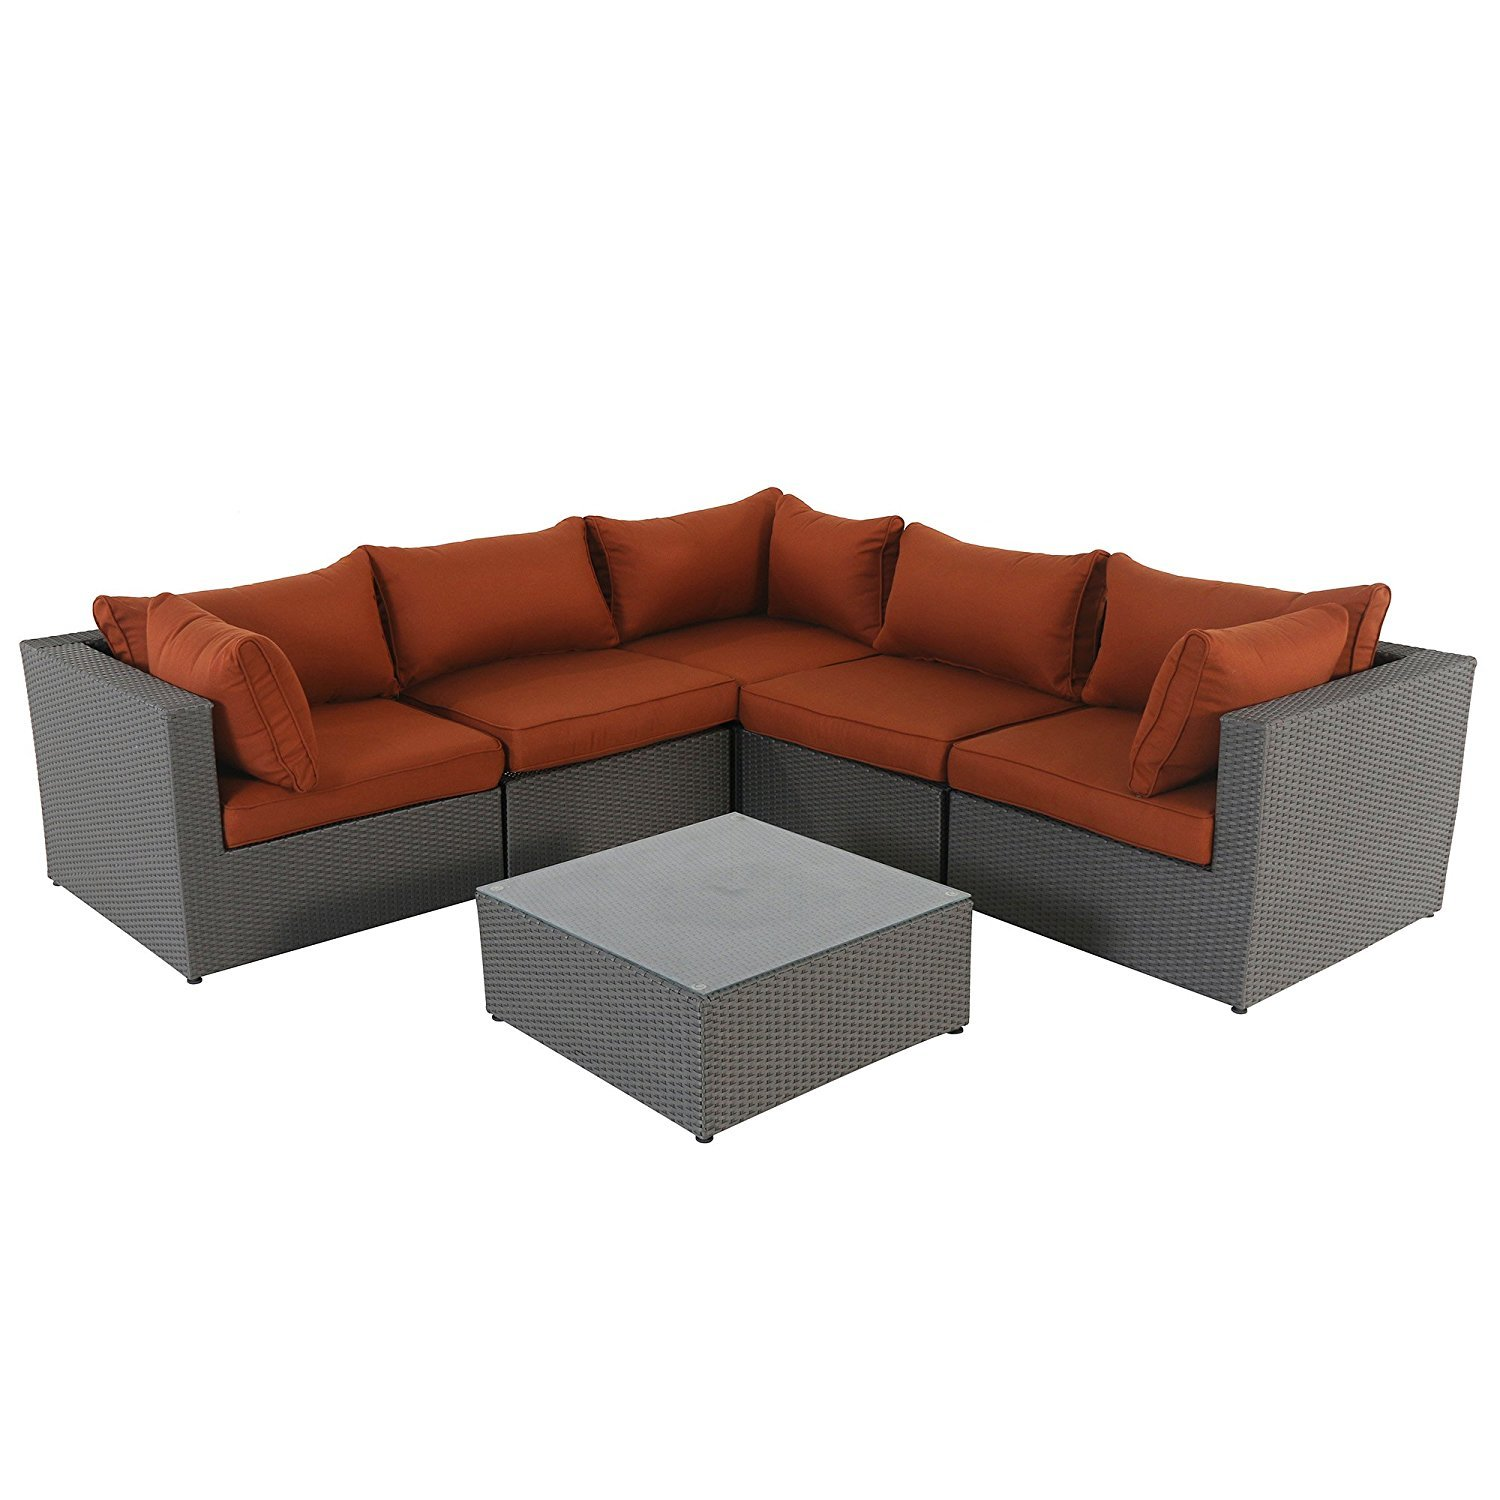 Design Couch Square Sectional Couch Home Furniture Design